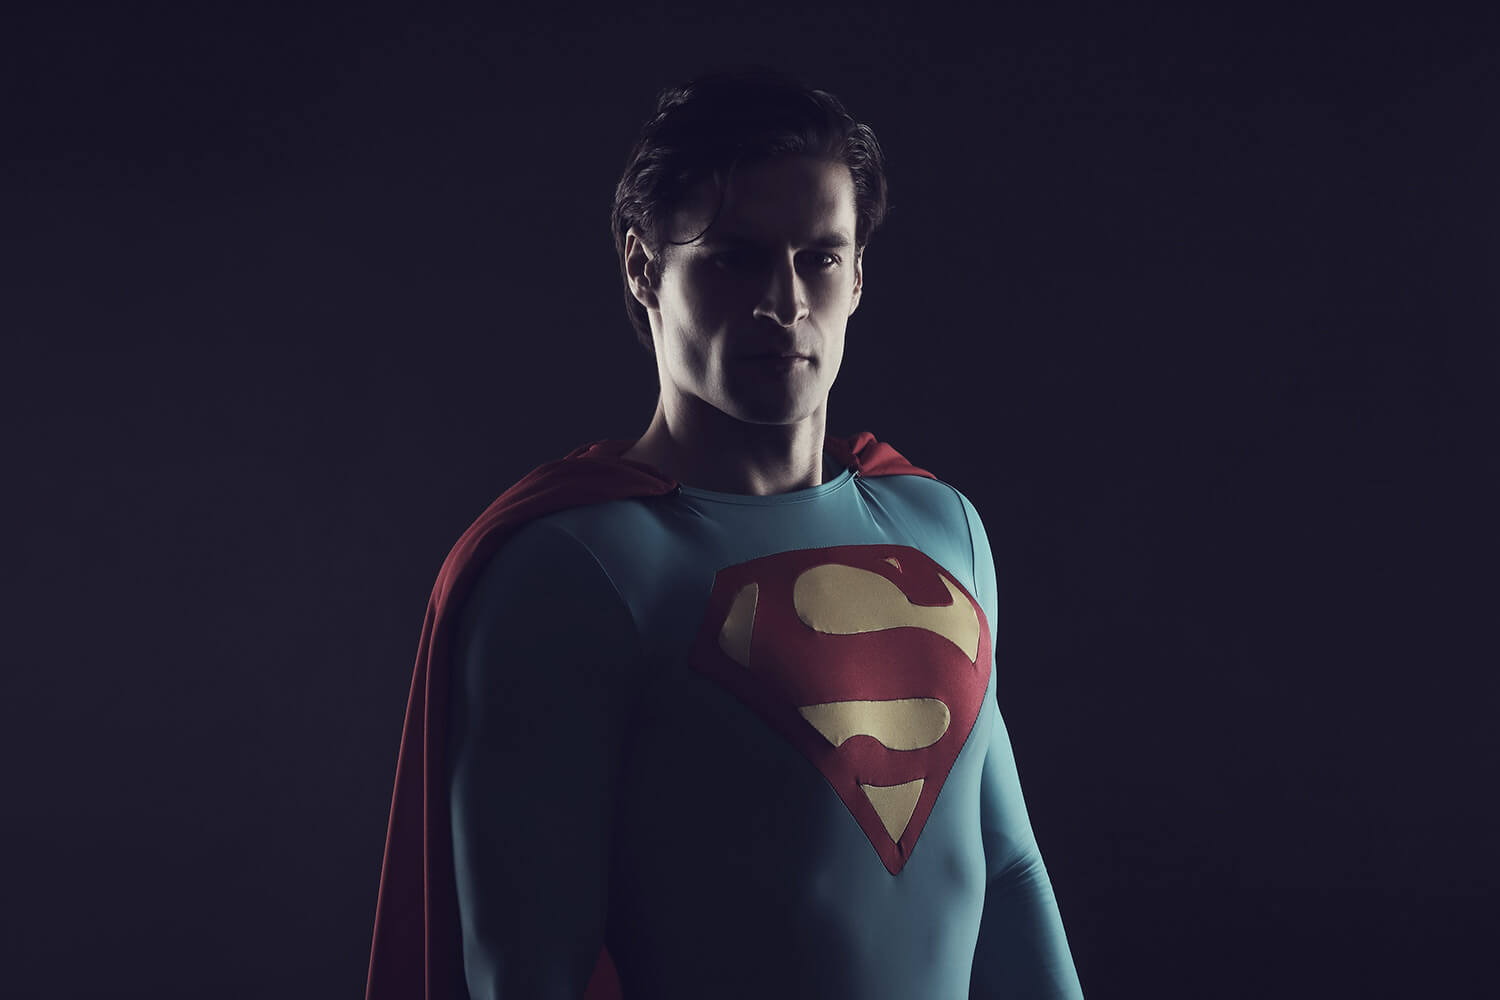 male portrait in a Superman costume on a black background, with light from the side